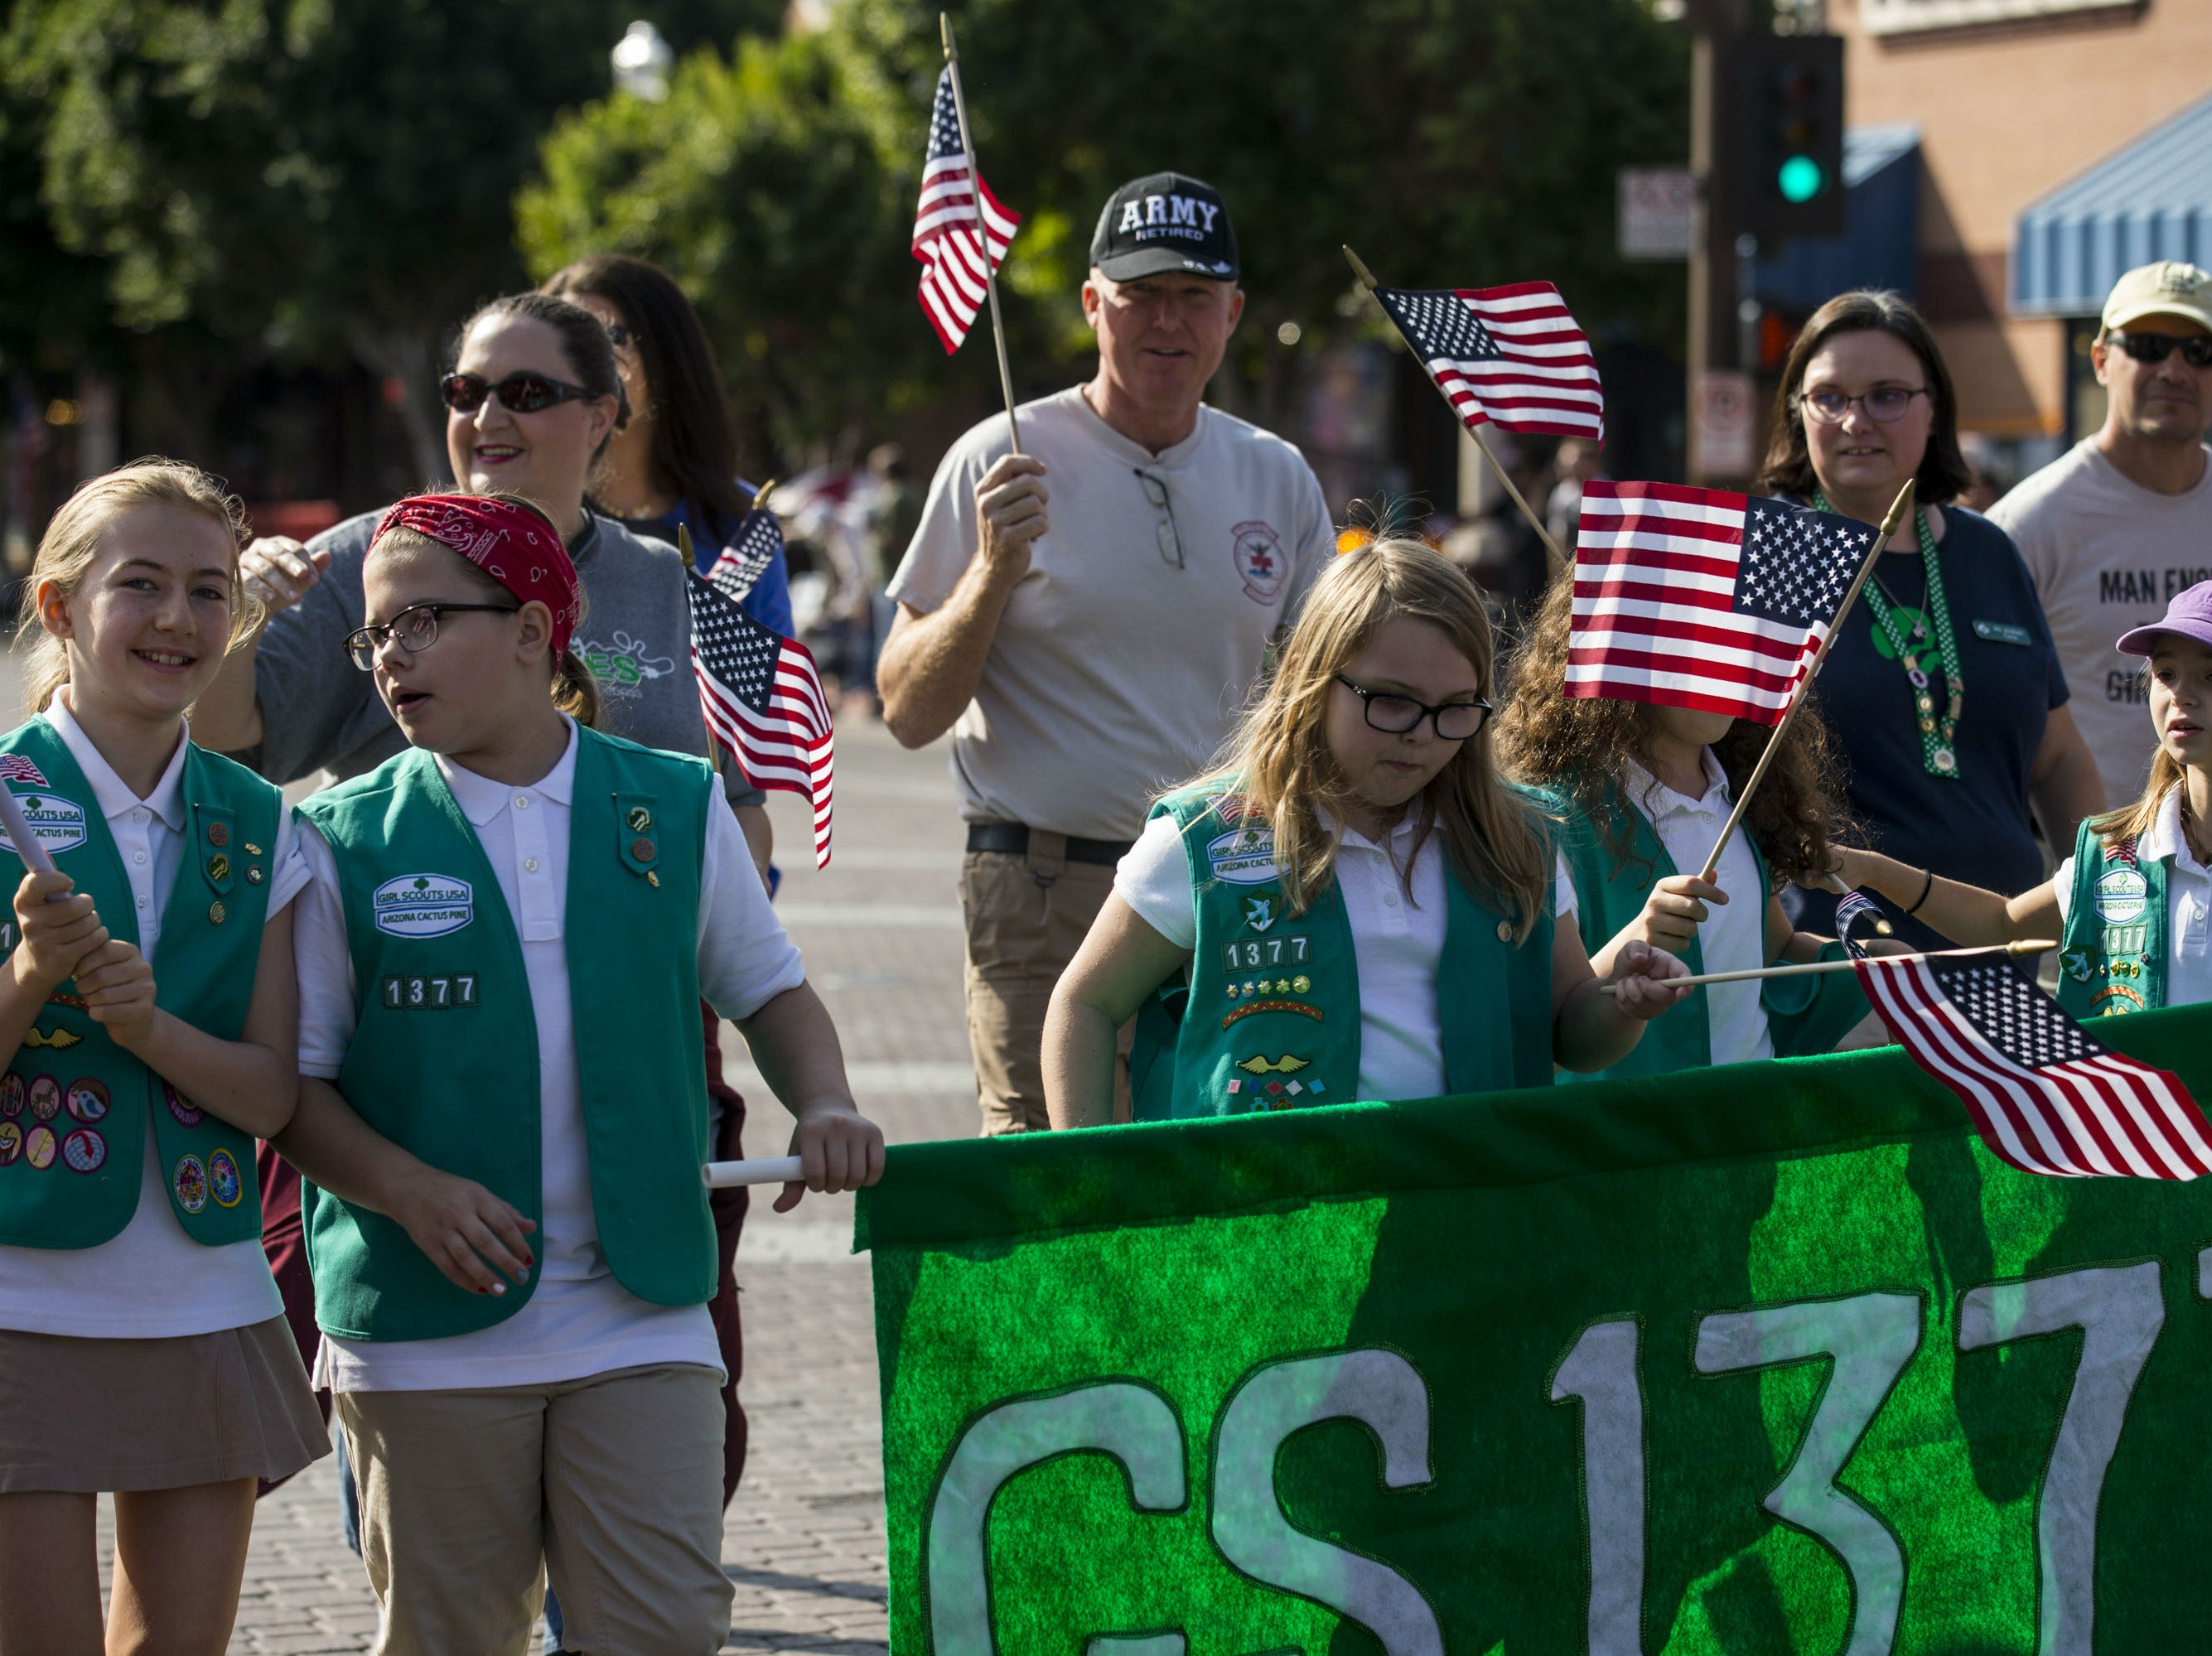 Girl Scouts walk on Mill Avenue during the Veterans Day Parade on Nov. 11, 2018, in Tempe, Ariz.